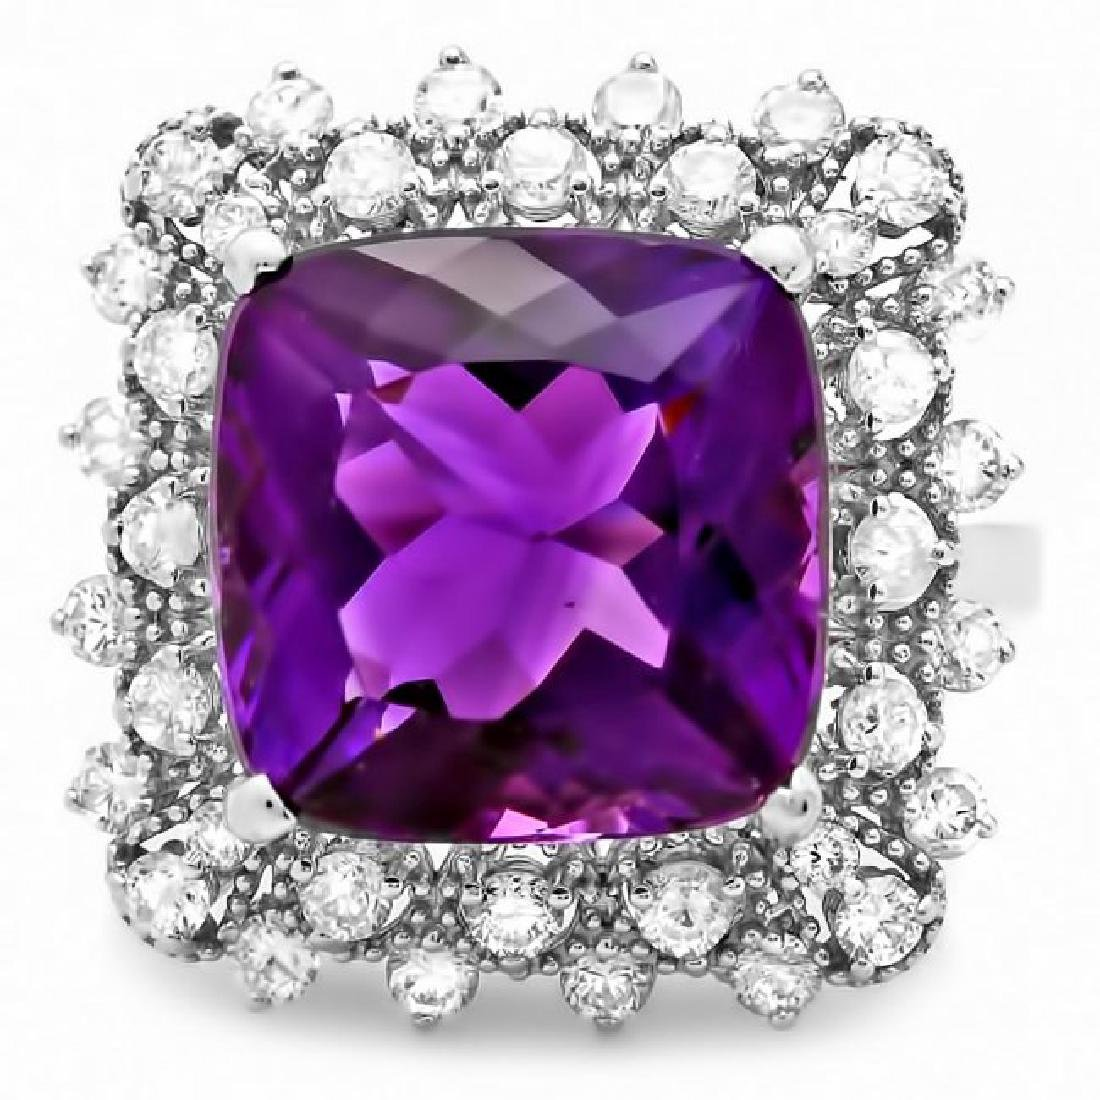 14k Gold 8.00ct Amethyst 1.00ct Diamond Ring - 2